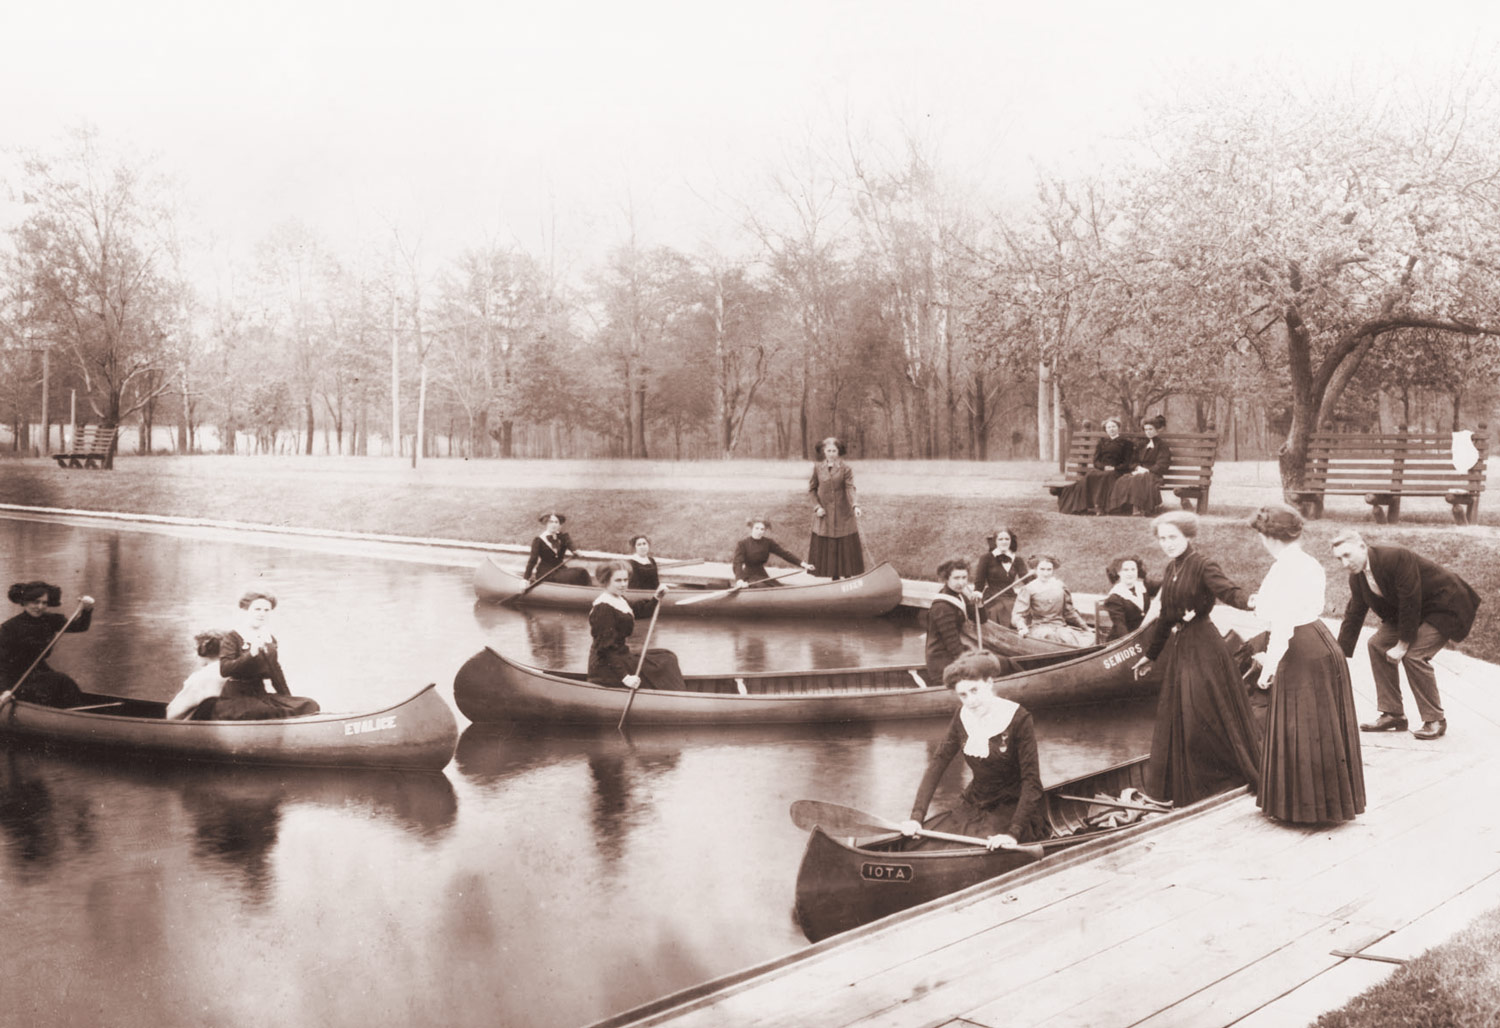 Rowing in Lake Marian at Saint Mary